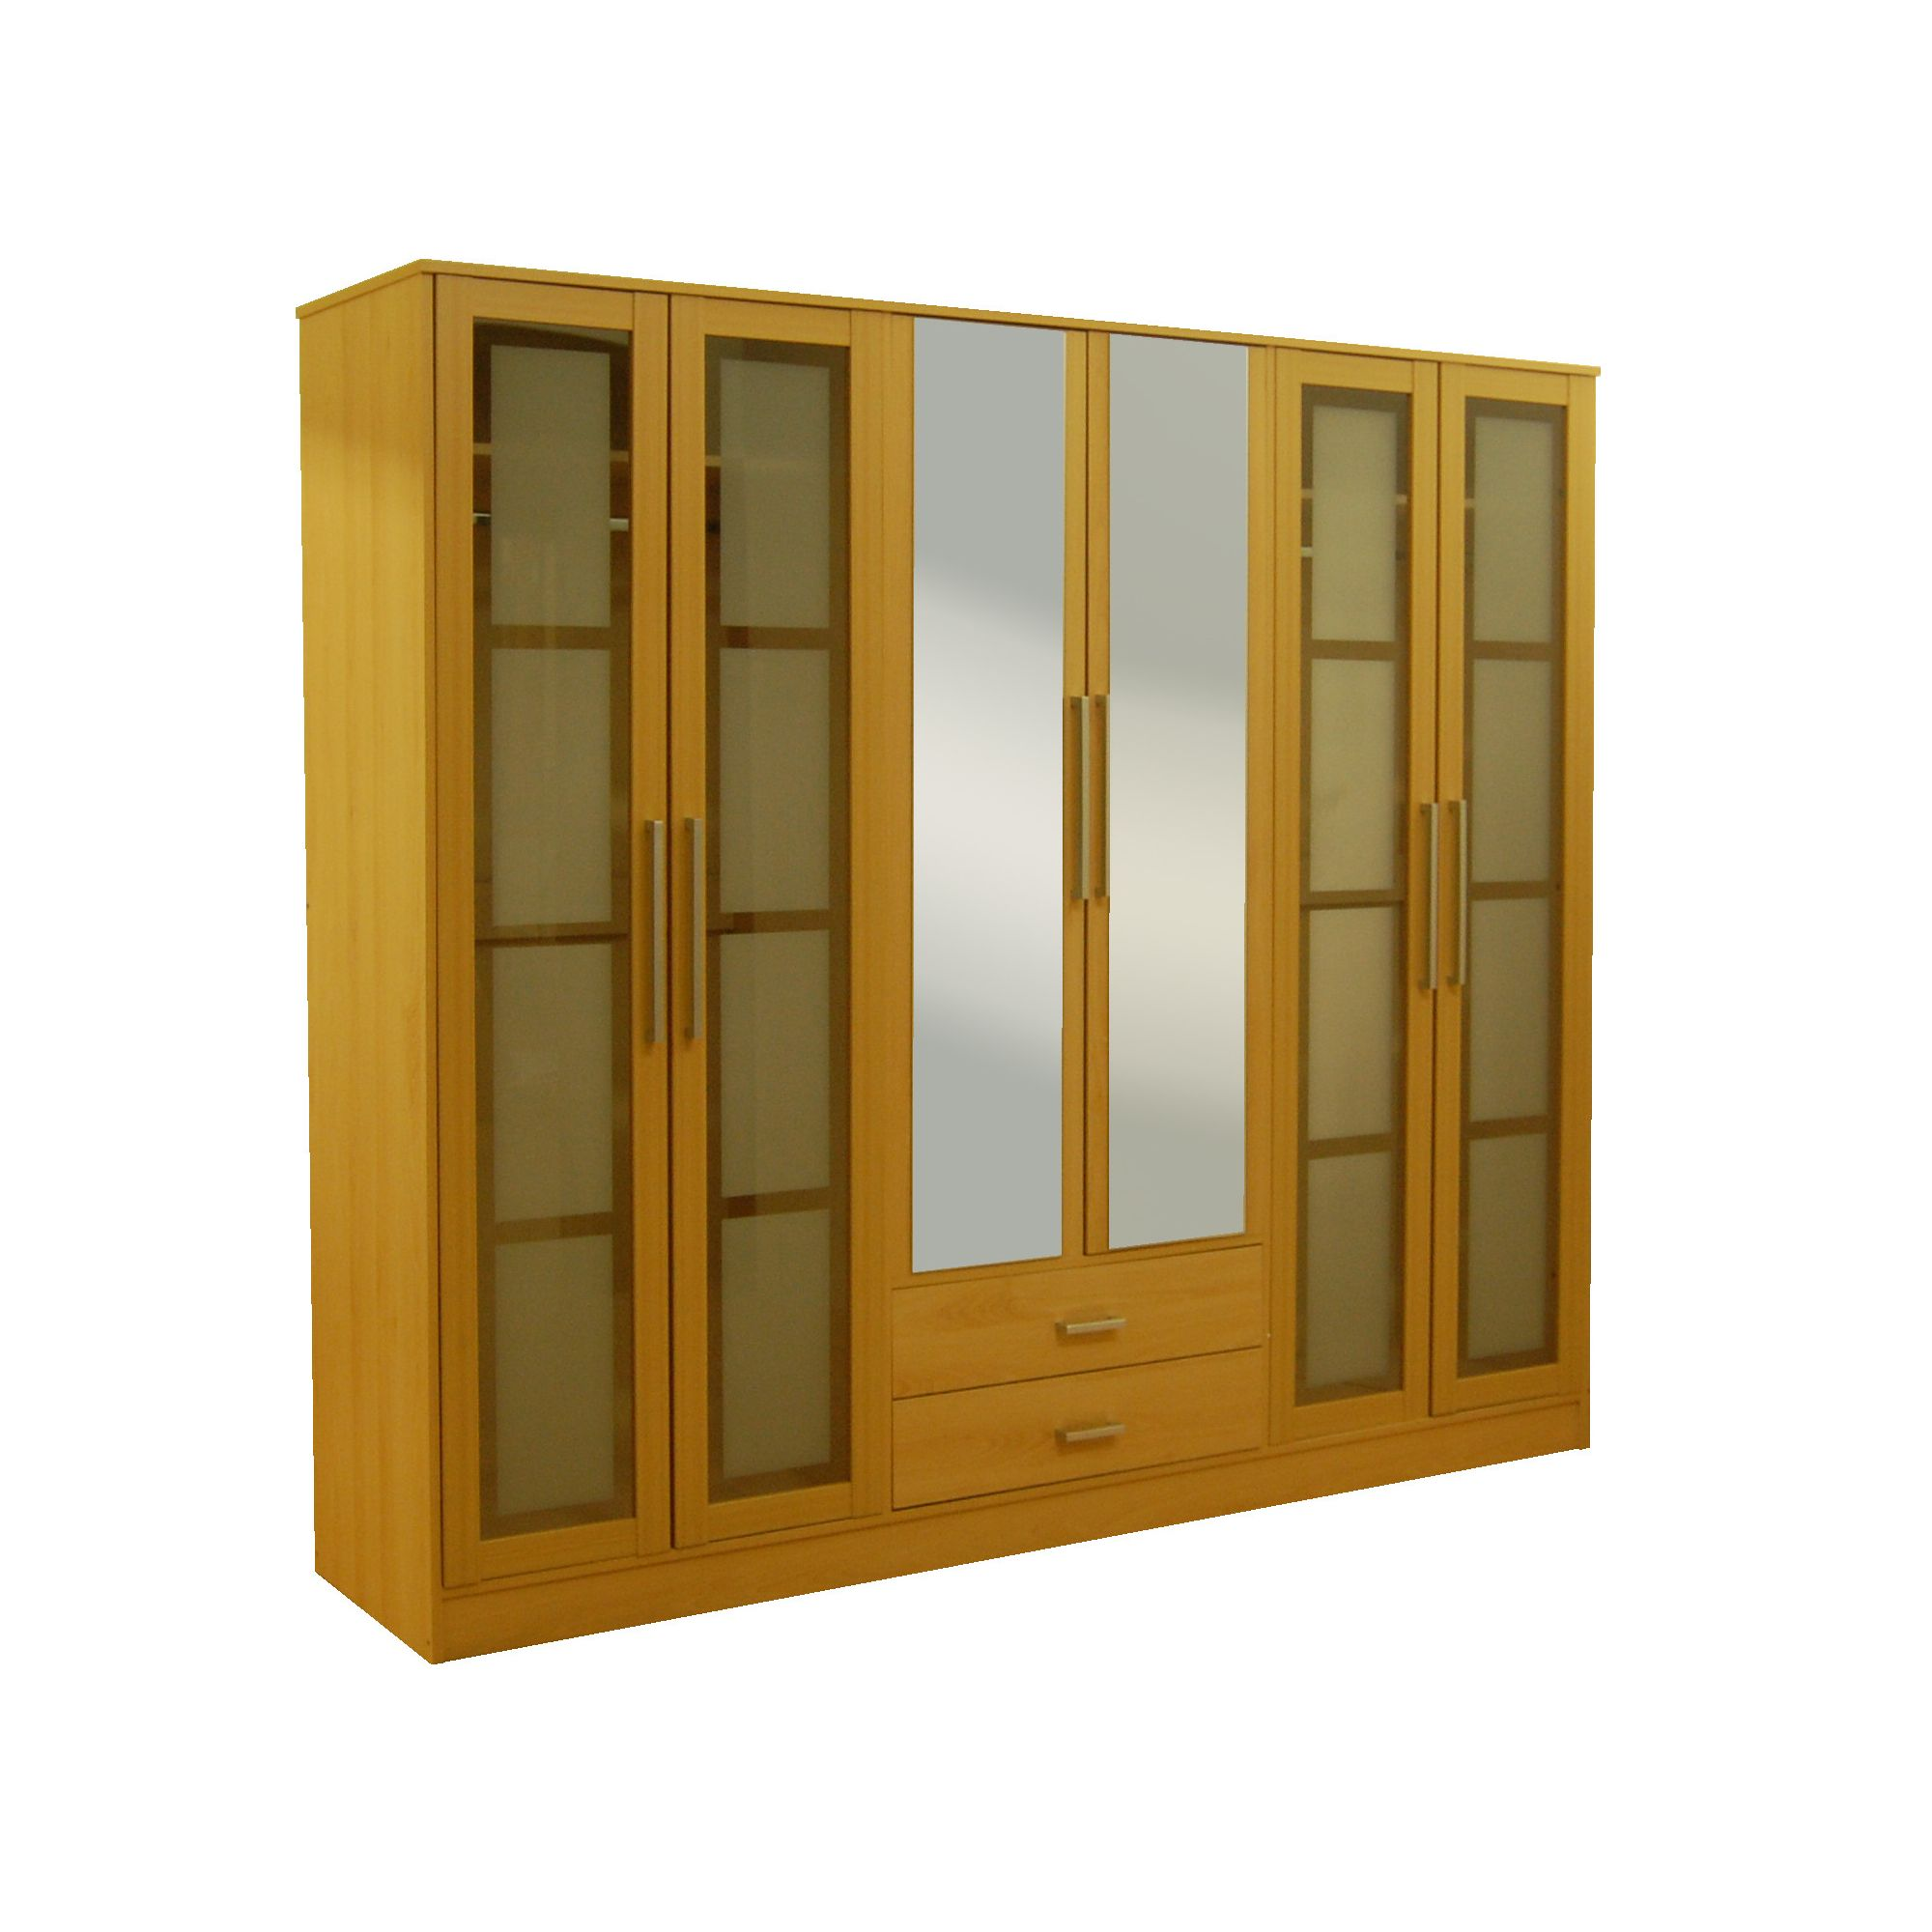 Kit Form Kit-form Glass Six Door Fitment Wardrobe in Beech at Tesco Direct